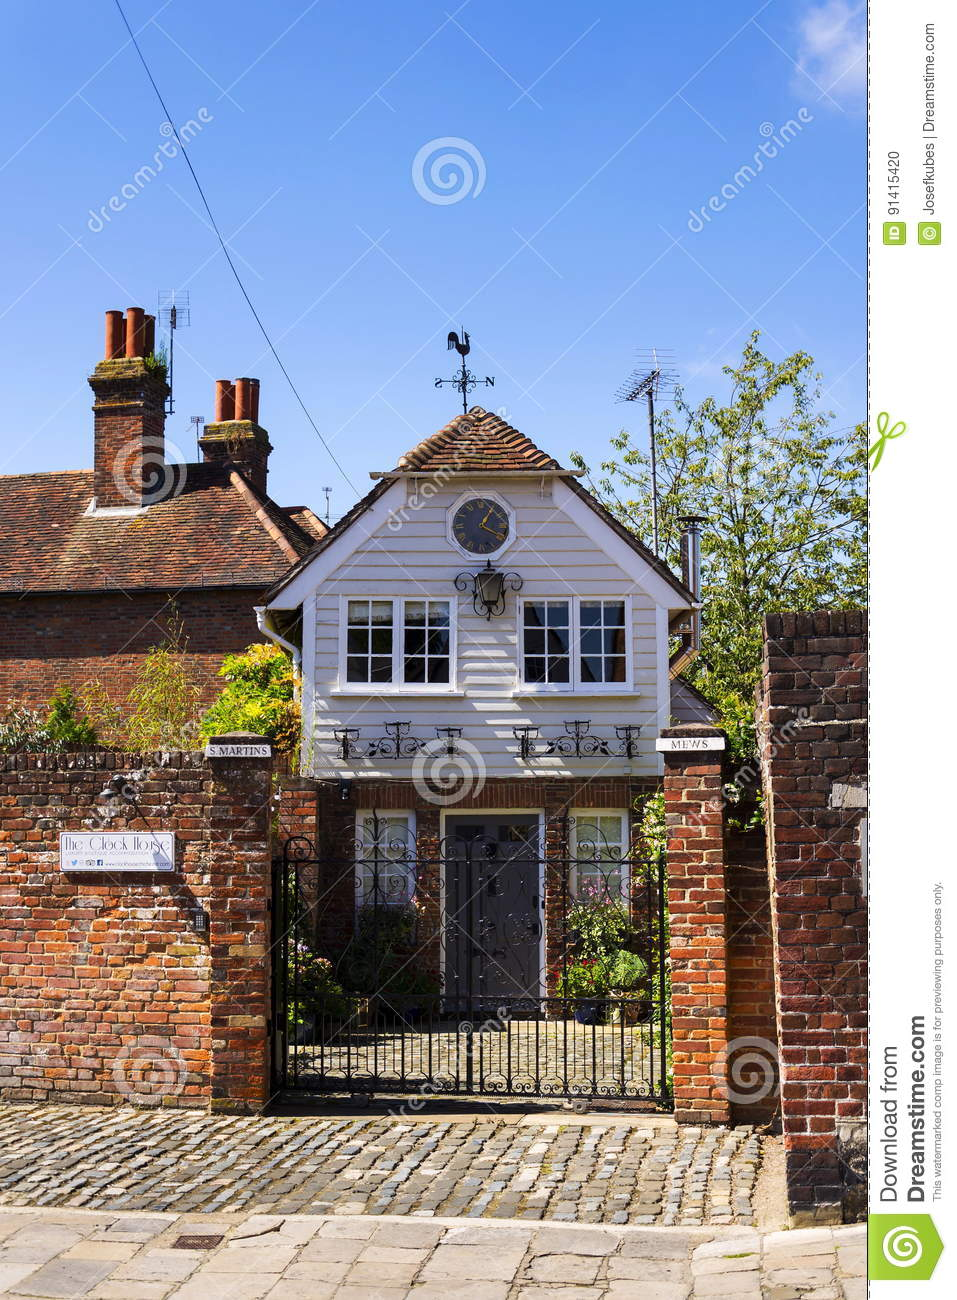 Luxury accommodation offered by Airbnb on August 12, 2016 in Chichester, United Kingdom.